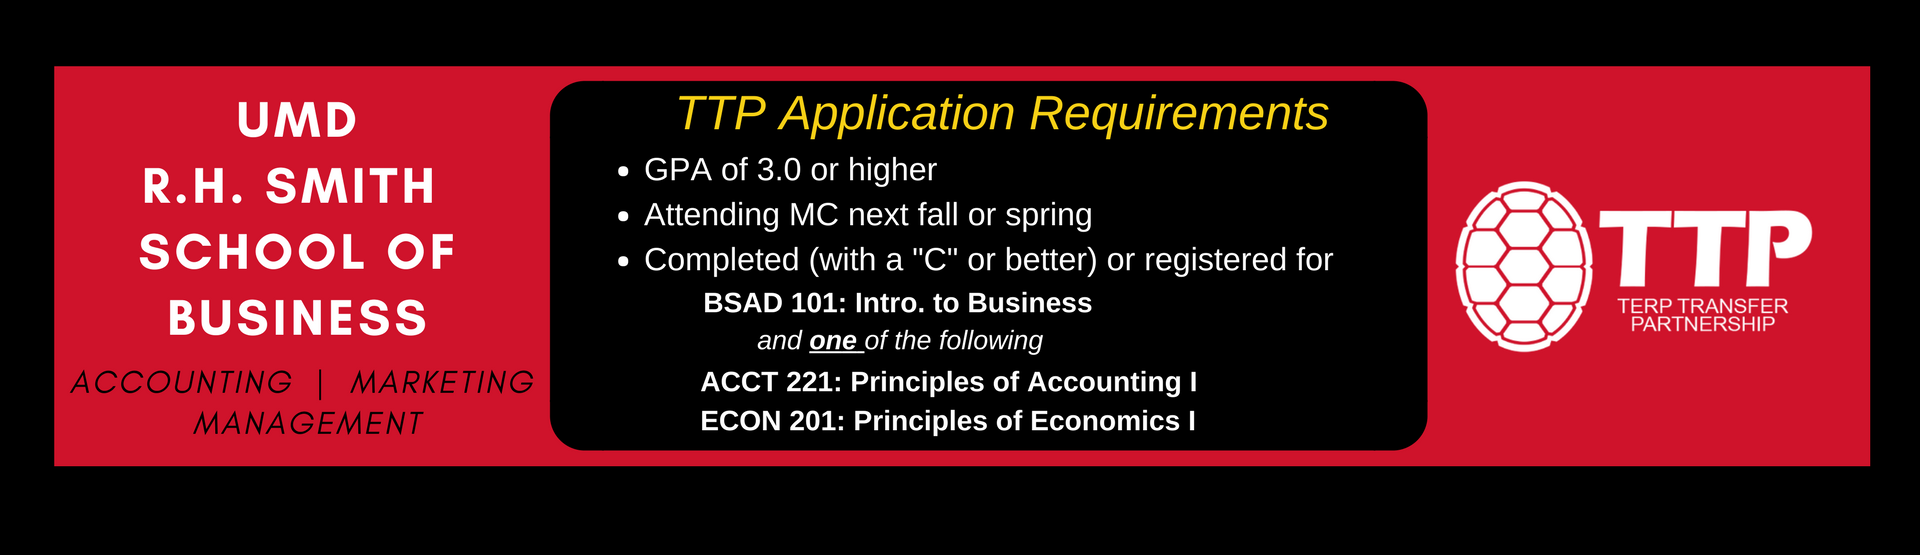 TTP Smith School of Business Application Requirements: Attending MC next semester, current GPA of 3.0 or higher, registered for or completed BSAD 101 and either ACCT 221 or ECON 201.